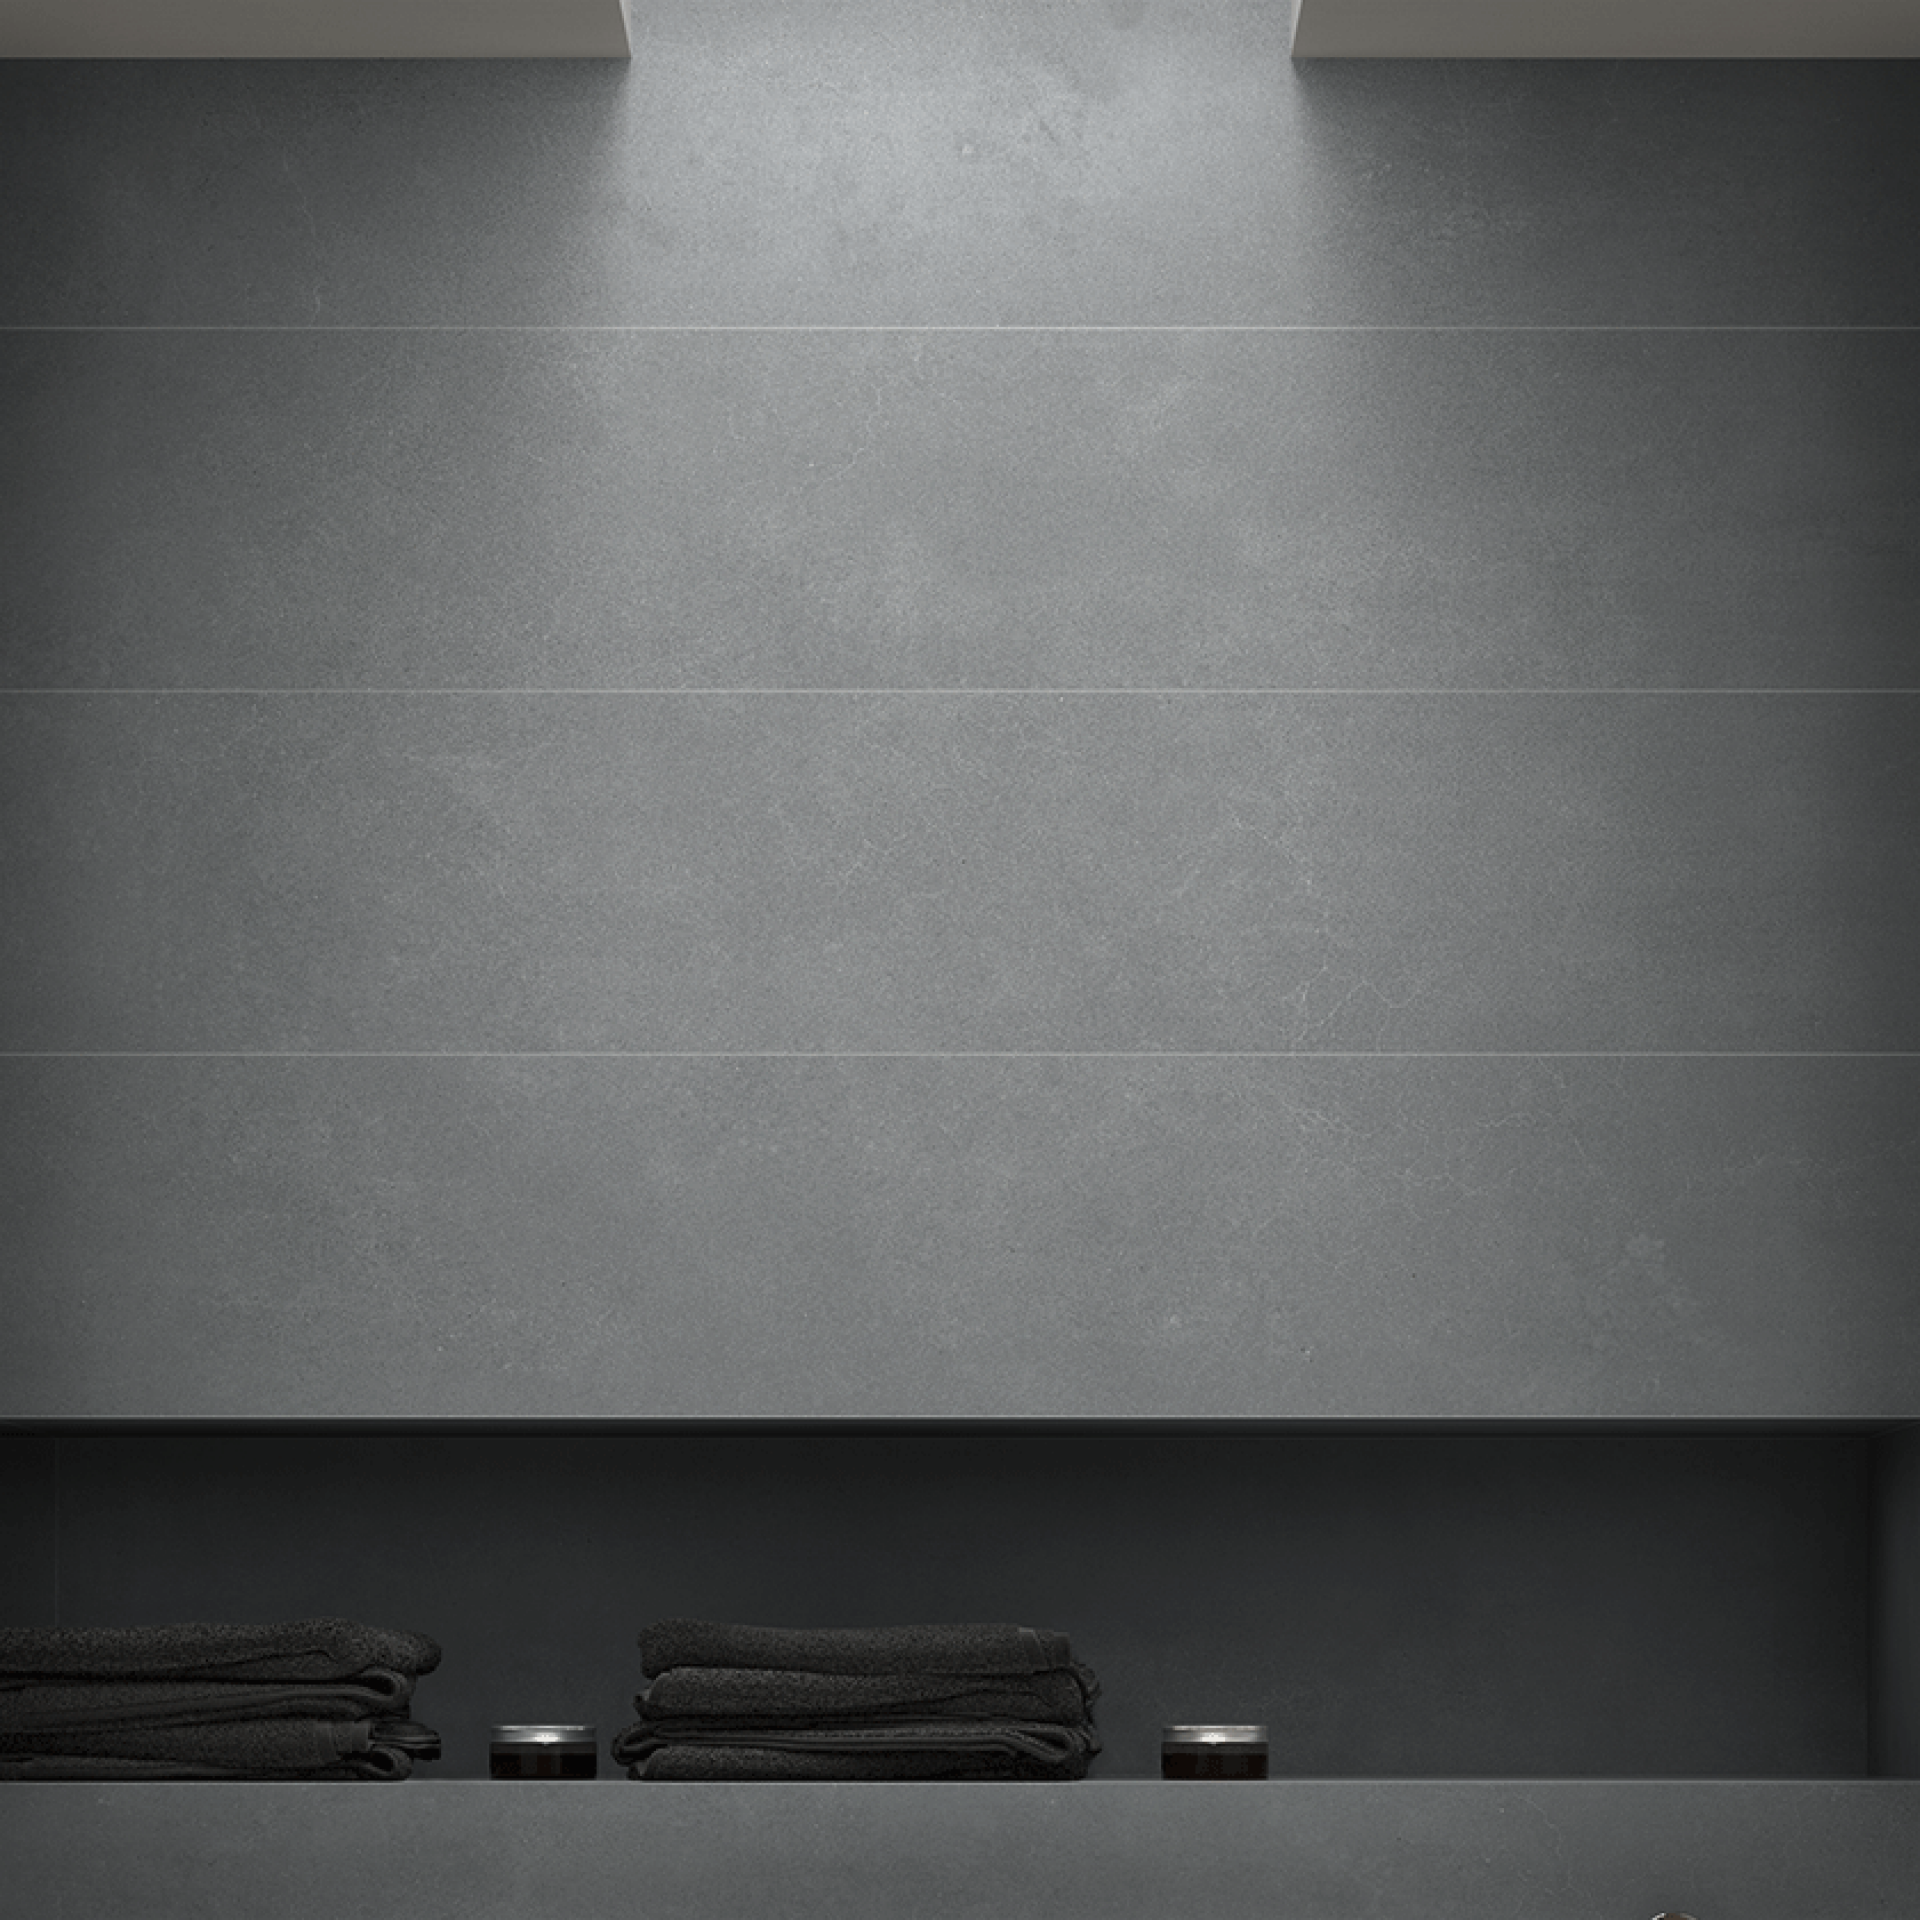 Micro Cement setting using Grey Tile. Available in 900mm x 900mm tile size.